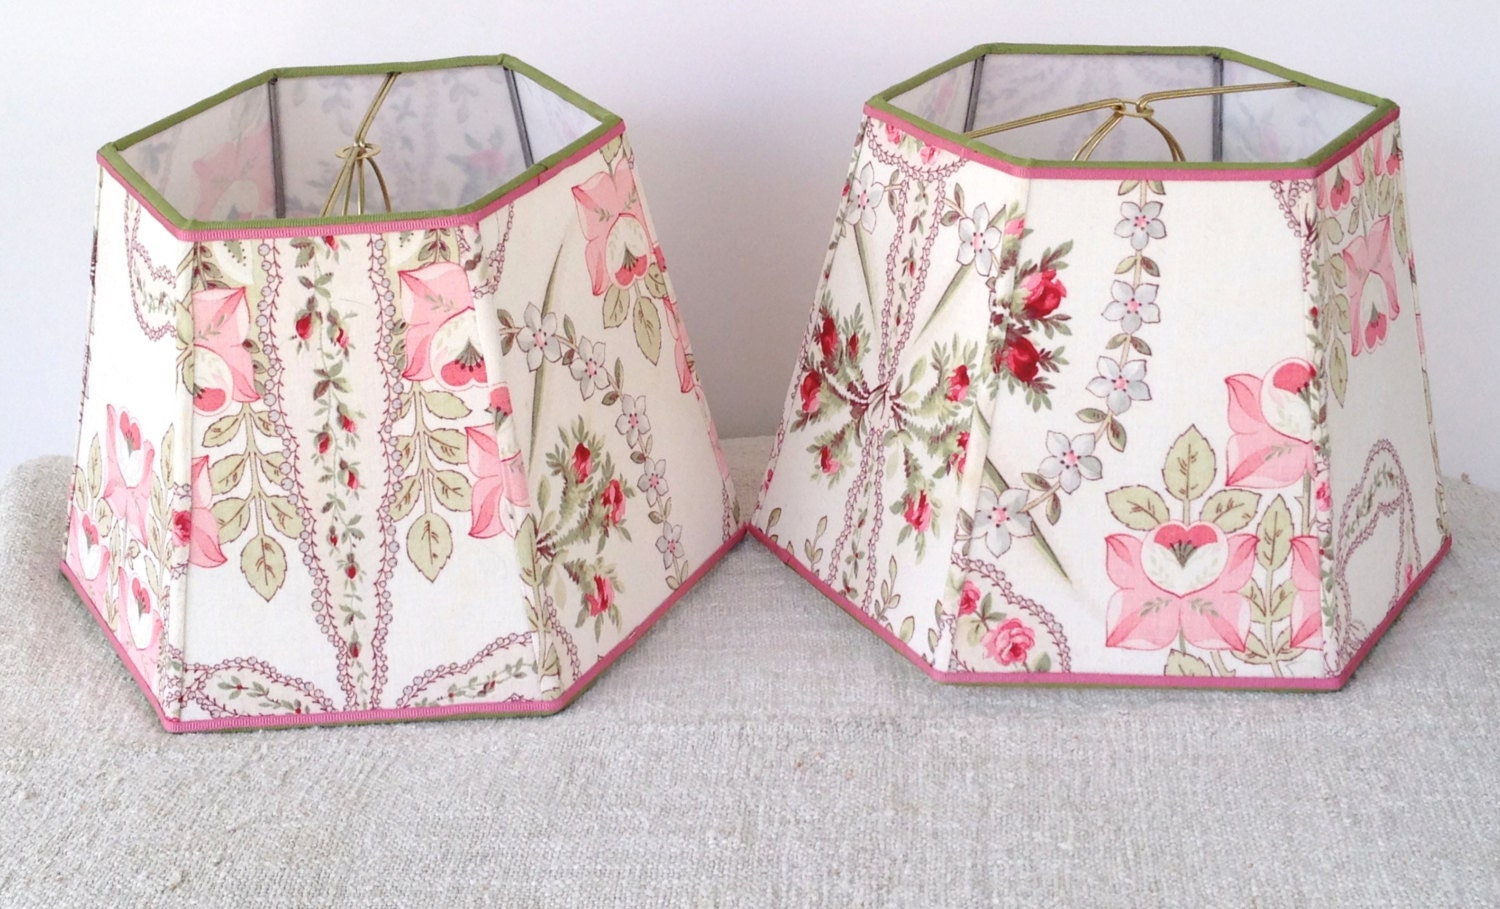 Pink French Floral Lamp Shade Lampshade Vintage Fabric Hex